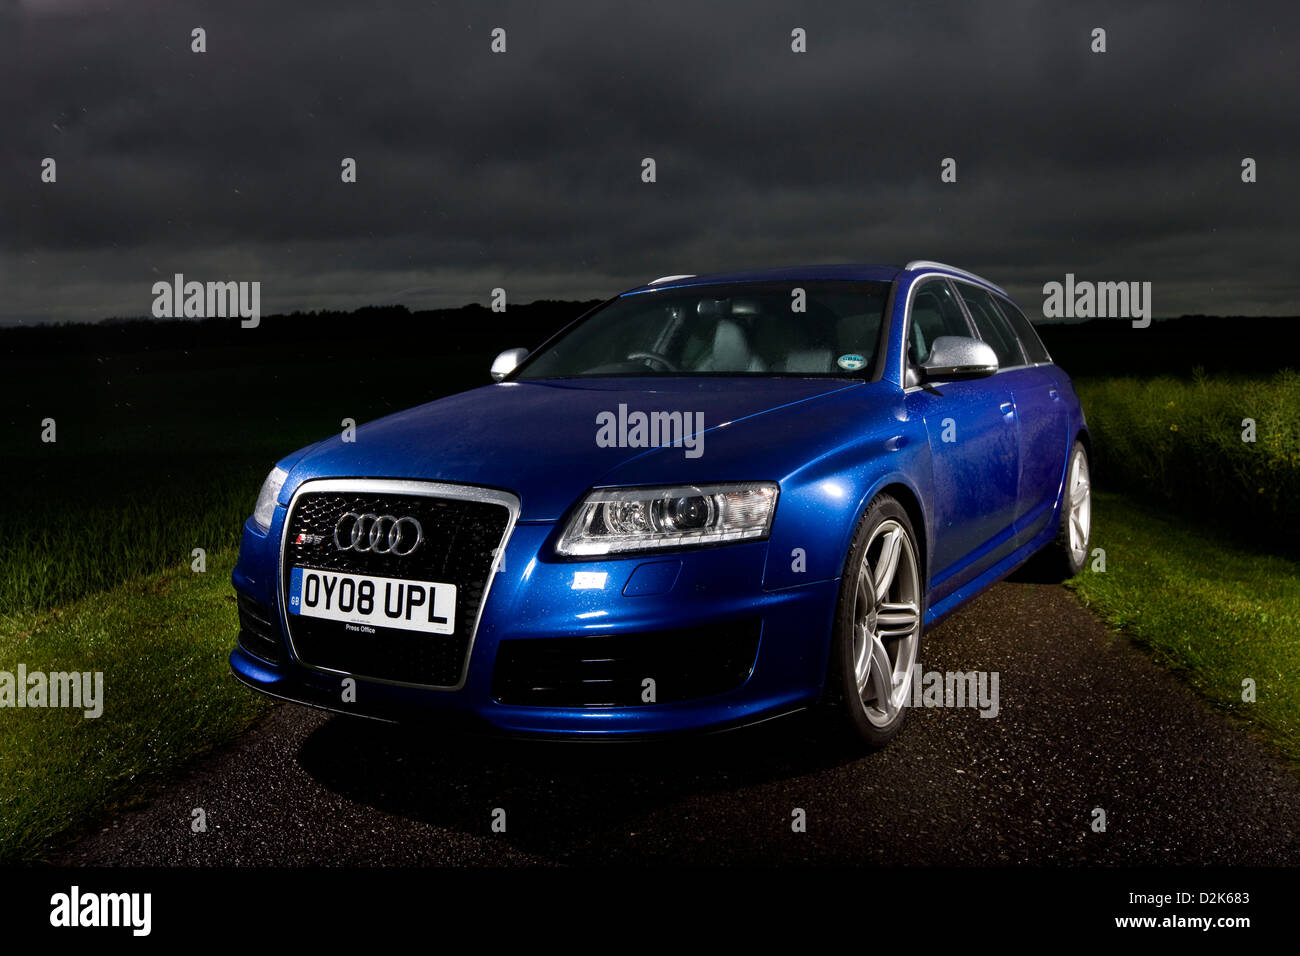 audi rs6 avant stock photos audi rs6 avant stock images alamy. Black Bedroom Furniture Sets. Home Design Ideas